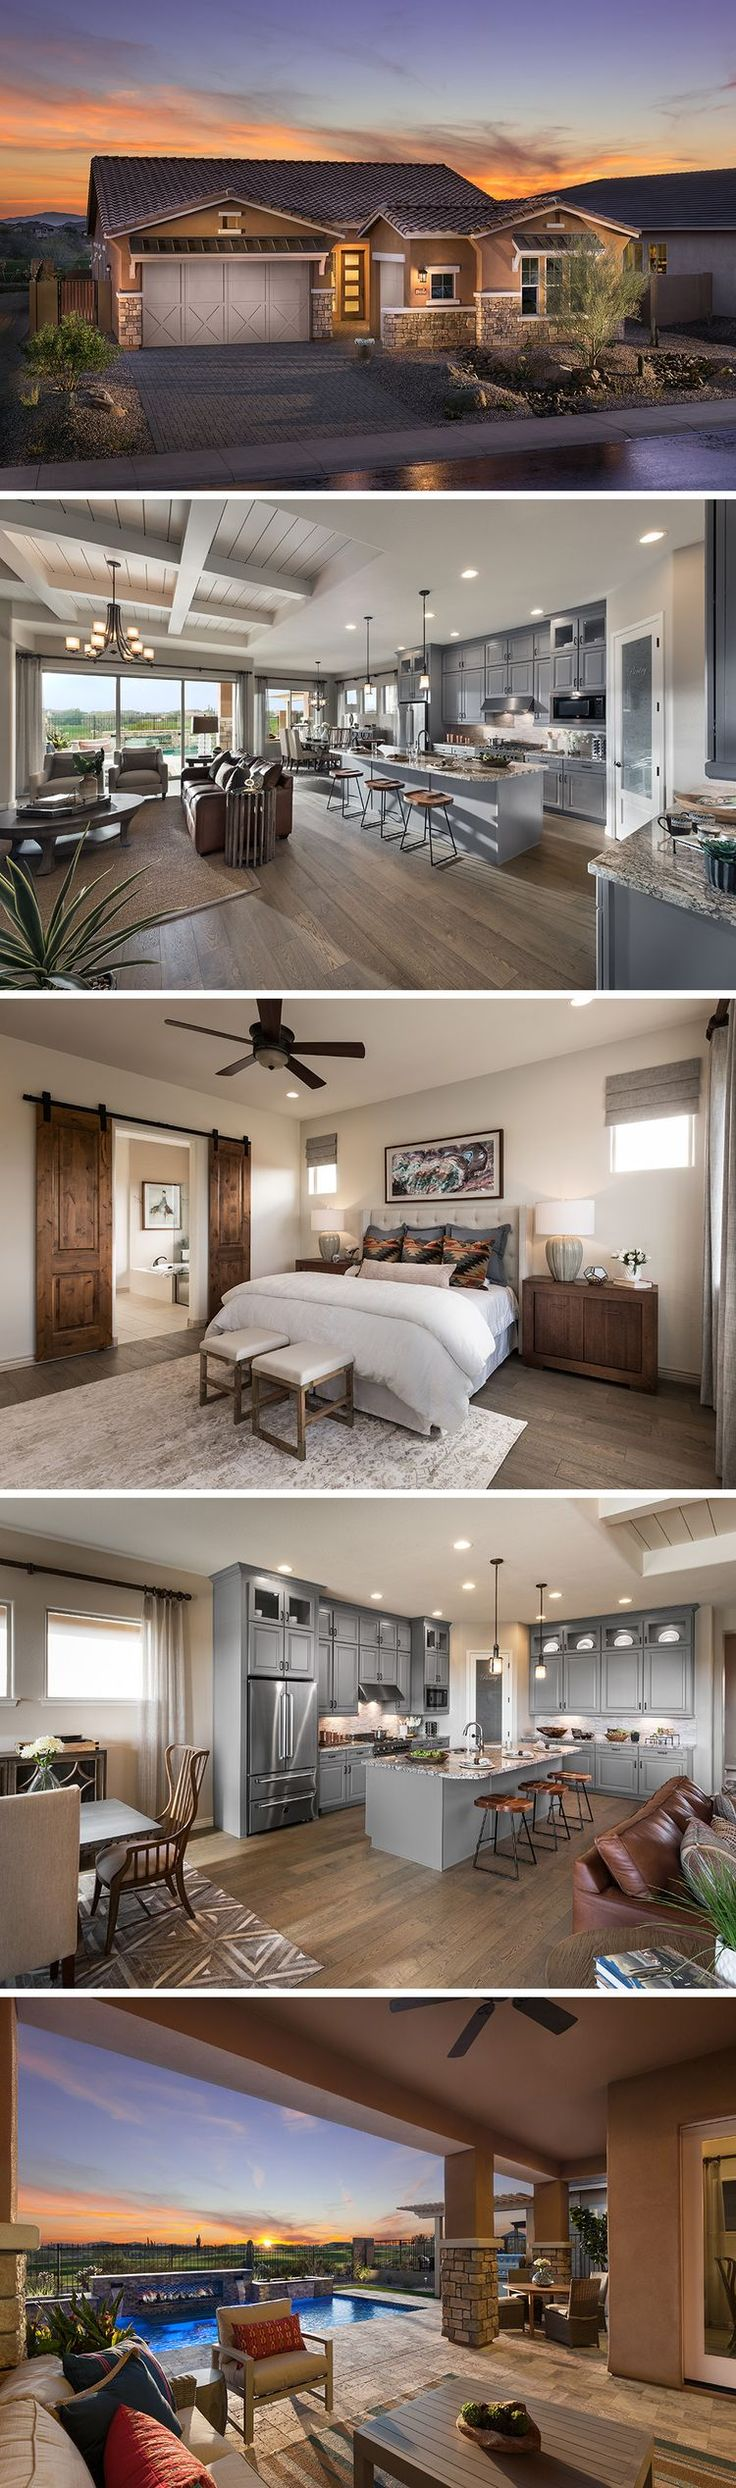 The Havasu is one of many available homes in the Greens at Blackstone, located in the prestigious master planned community of Vistancia! Here you can enjoy hiking trails, an 18-hole golf course, a beautiful country club, outdoor pool, and more. The Havasu is customizable at 4-5 bedrooms, 3 full baths, and up to 2,454 square feet of living space. Stop on by and check out this lovely community.